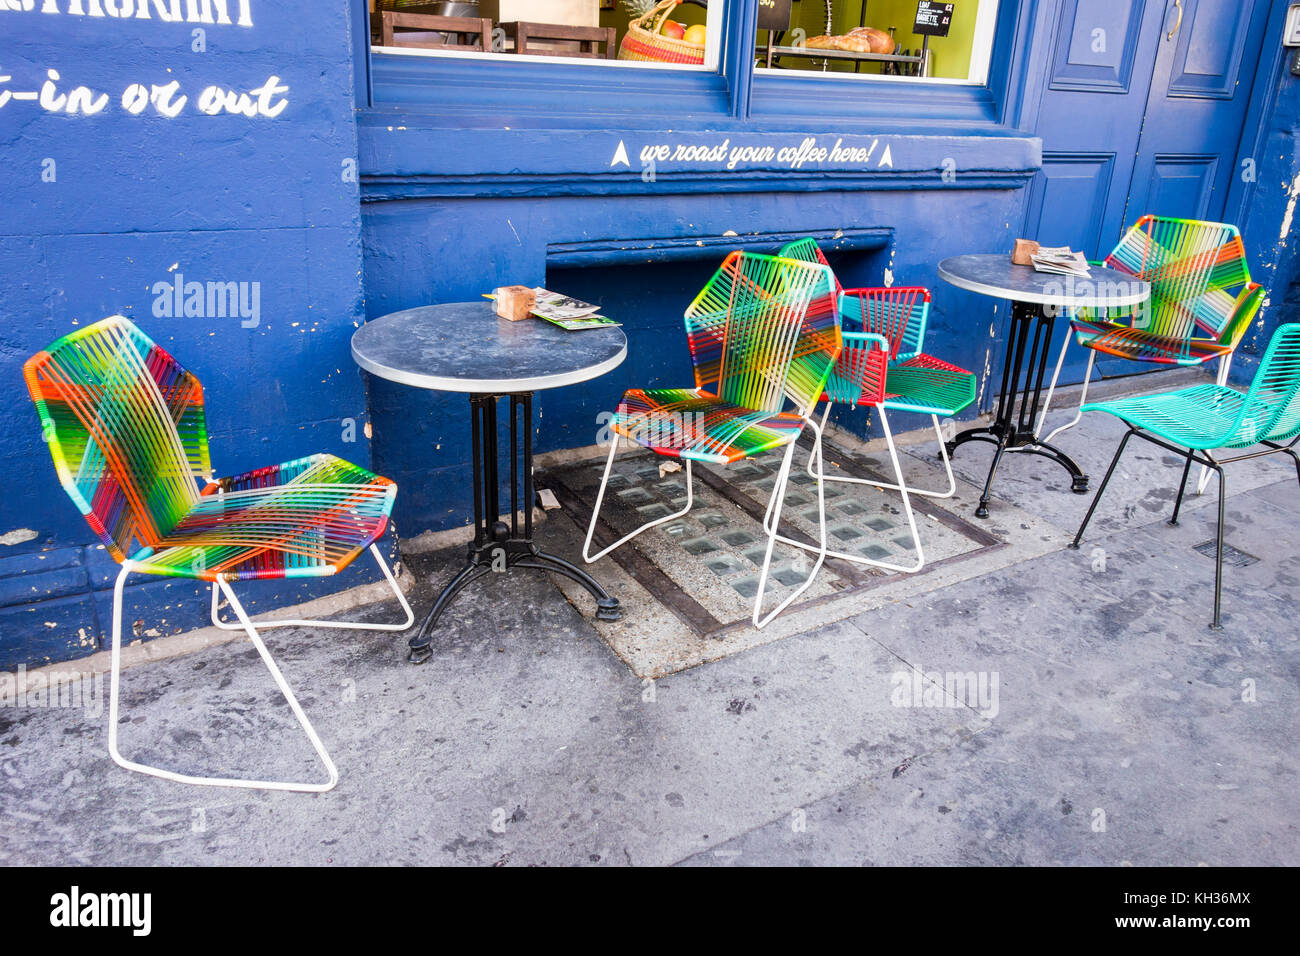 Colourful chairs and tables outside a cafe in Spitafields, City of London, UK - Stock Image